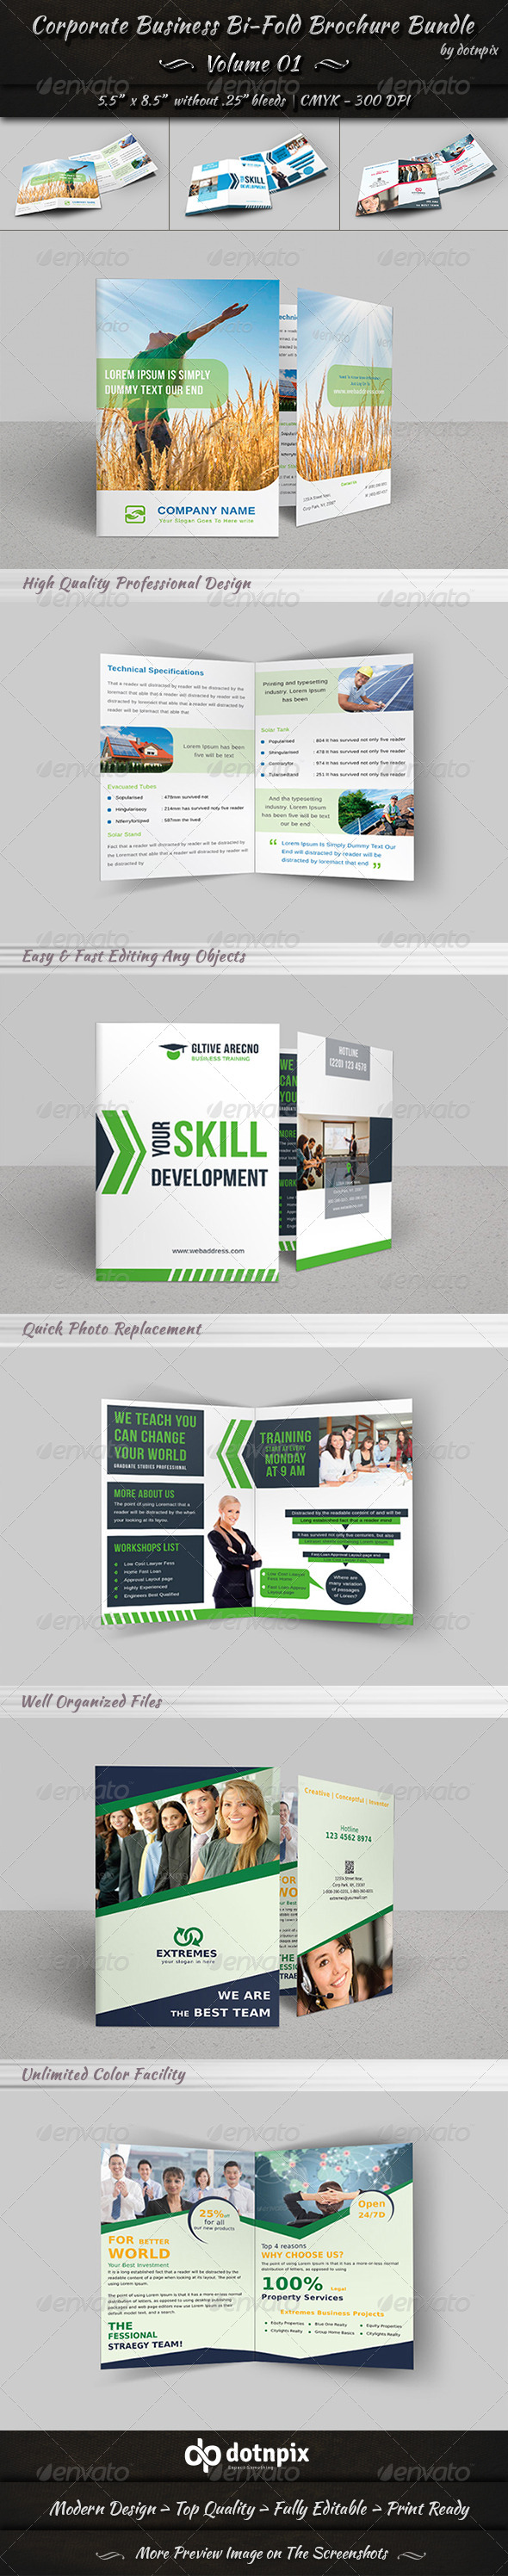 GraphicRiver Corporate Business Bi-Fold Brochure Bundle v1 8229702